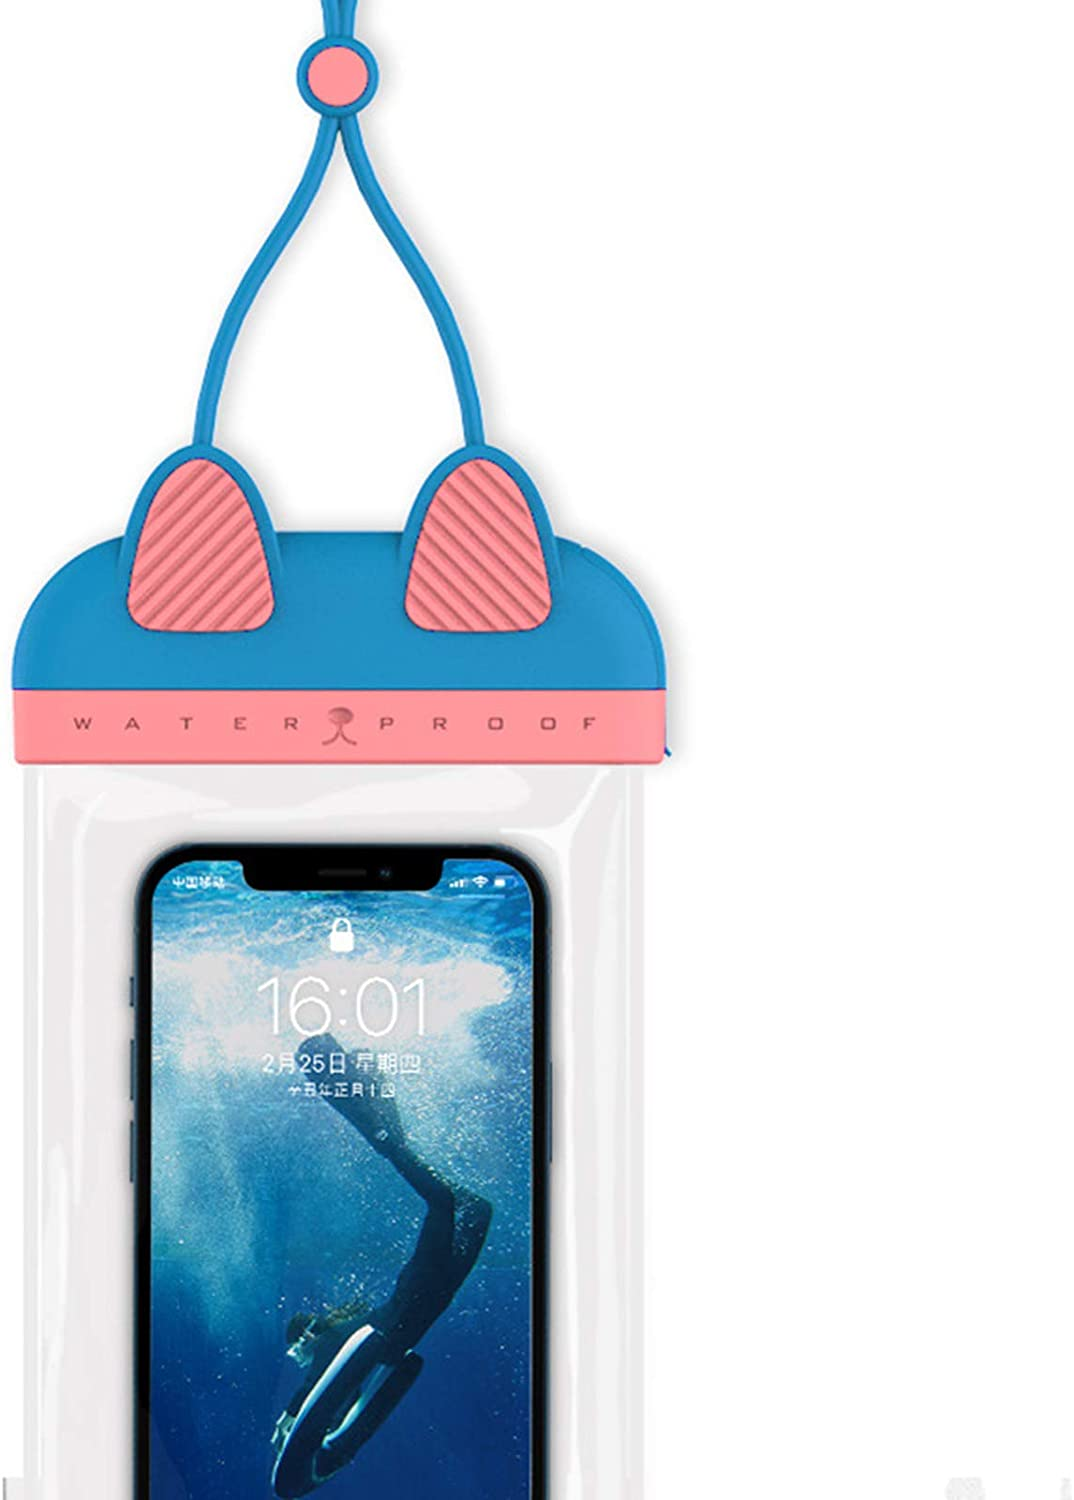 SIZHINAI Universal Waterproof Pouch, with Neck Strap Cellphone Dry Bag Cute Cat Ears Design Case Bundle Universal Floating Waterproof Phone Pouch for Water Sports